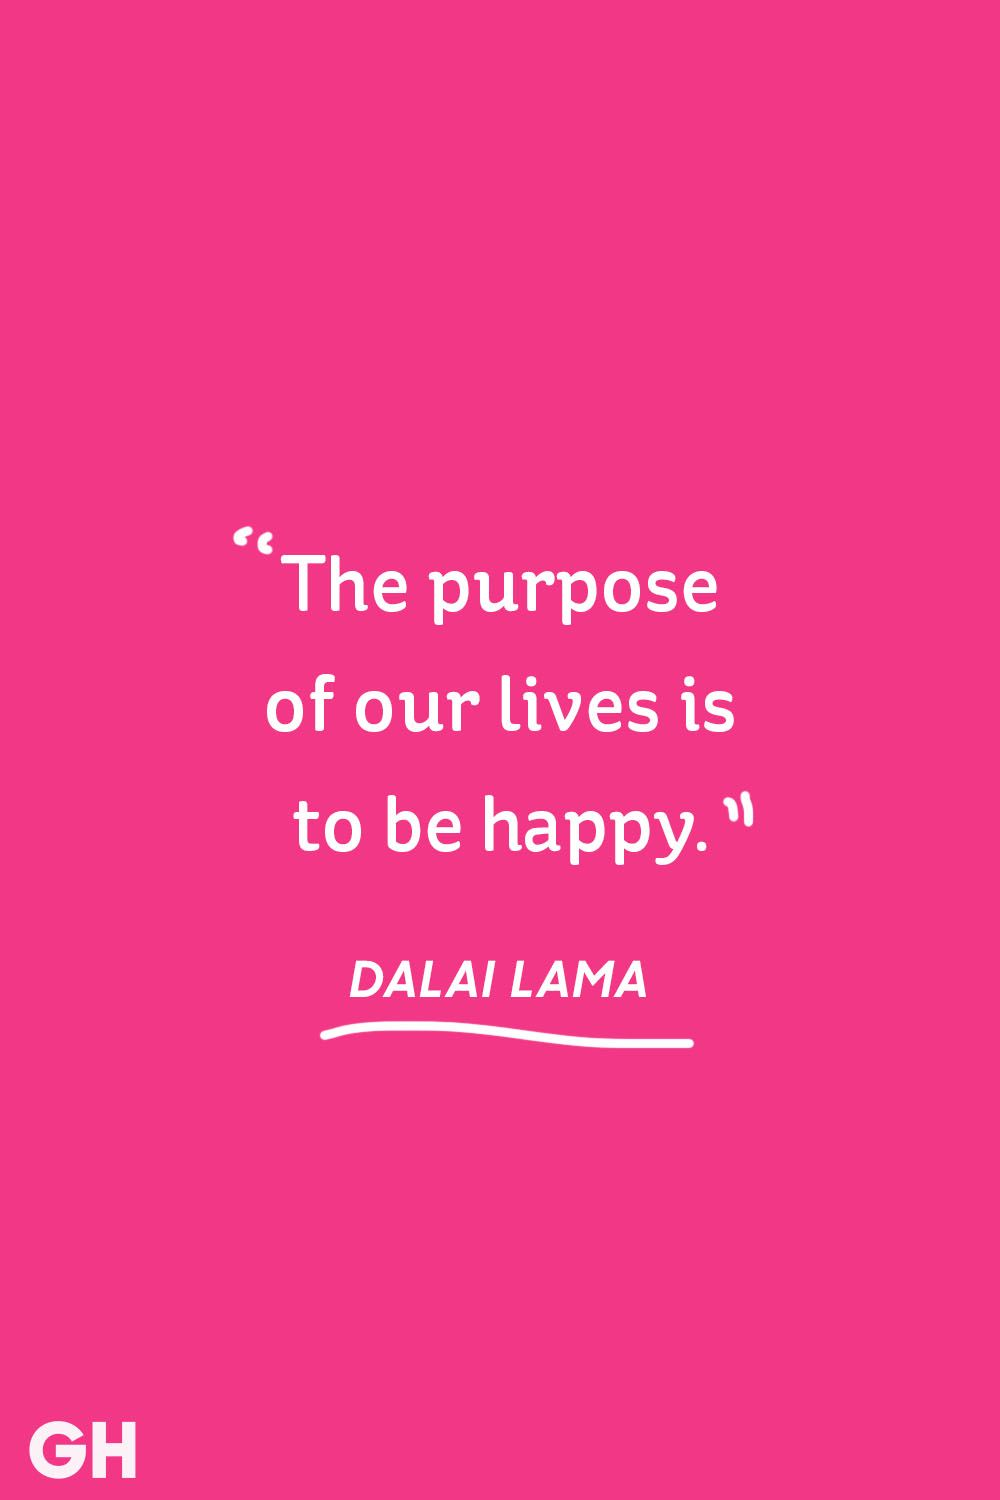 Image of: Meaning Dalai Lama Happy Quote Good Housekeeping 22 Happy Quotes Best Quotes About Happiness And Joy